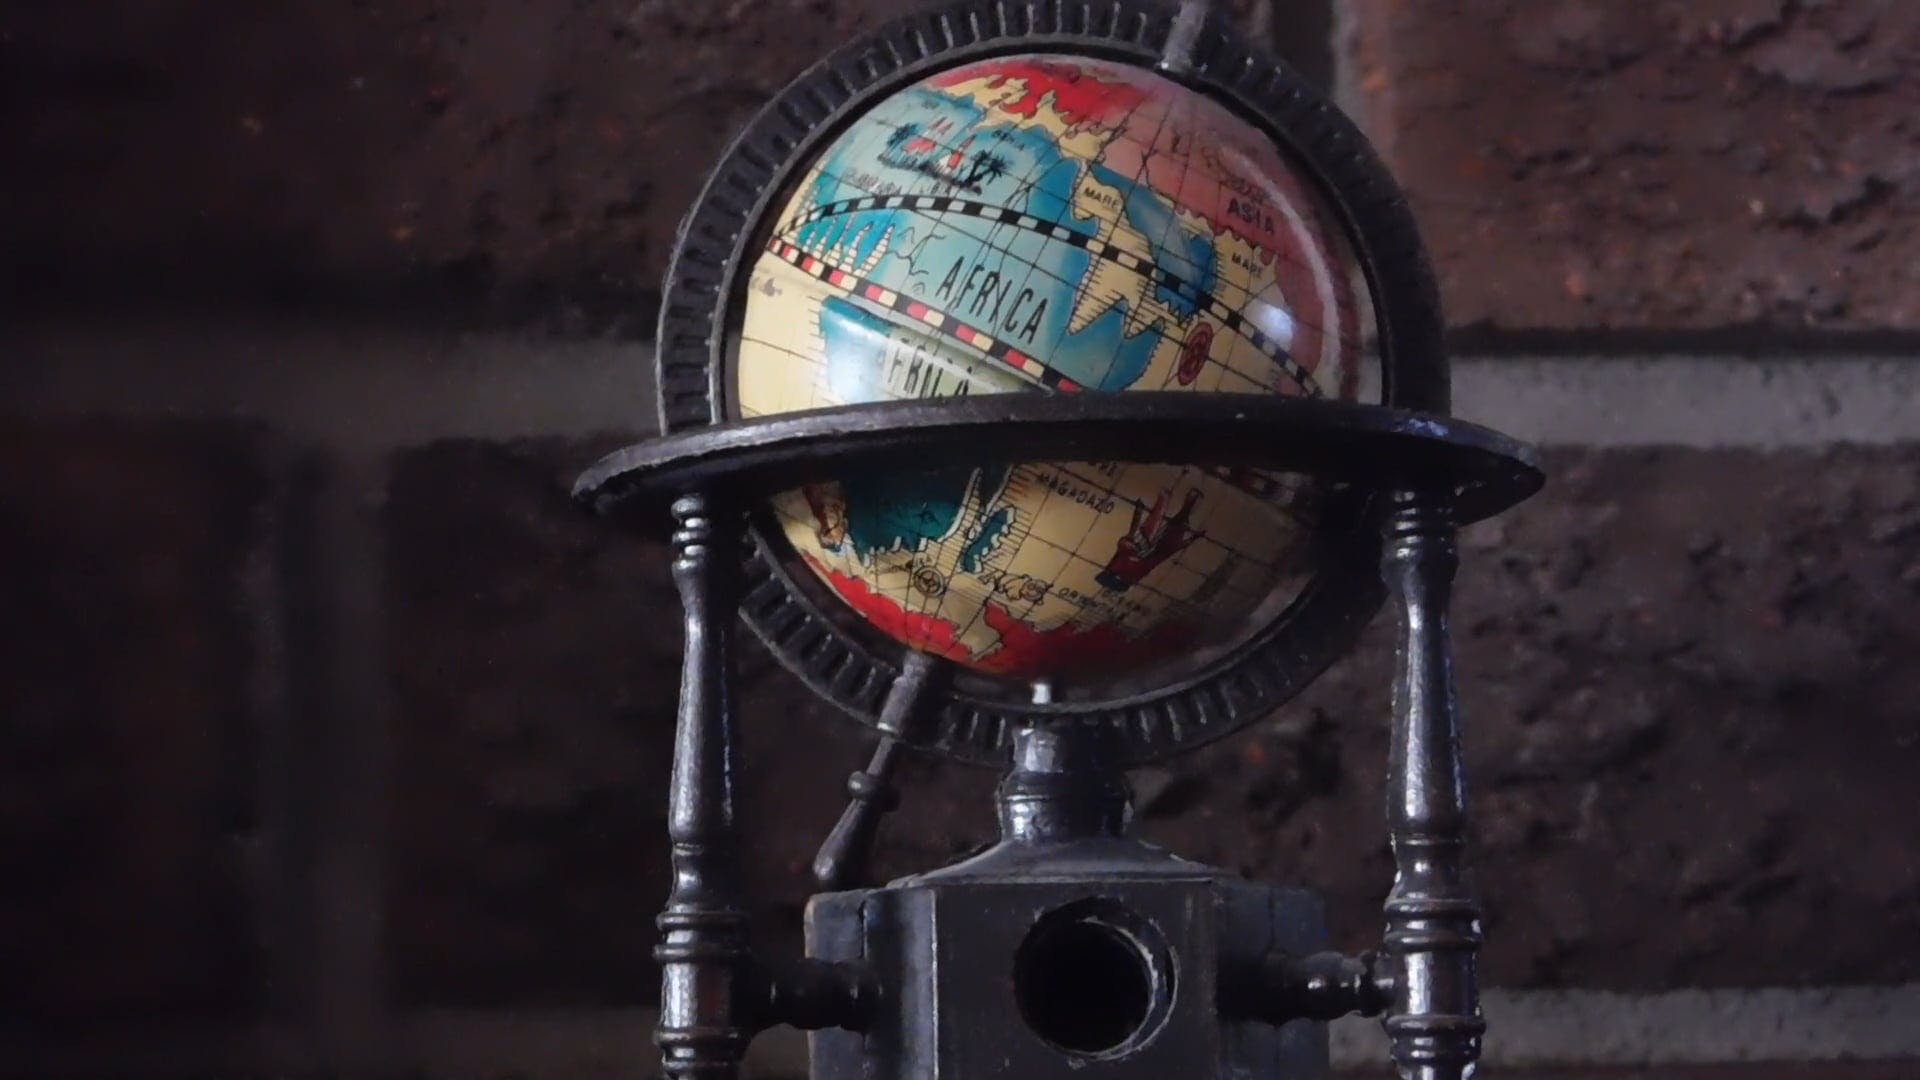 A Miniature Globe-Pencil Sharpener